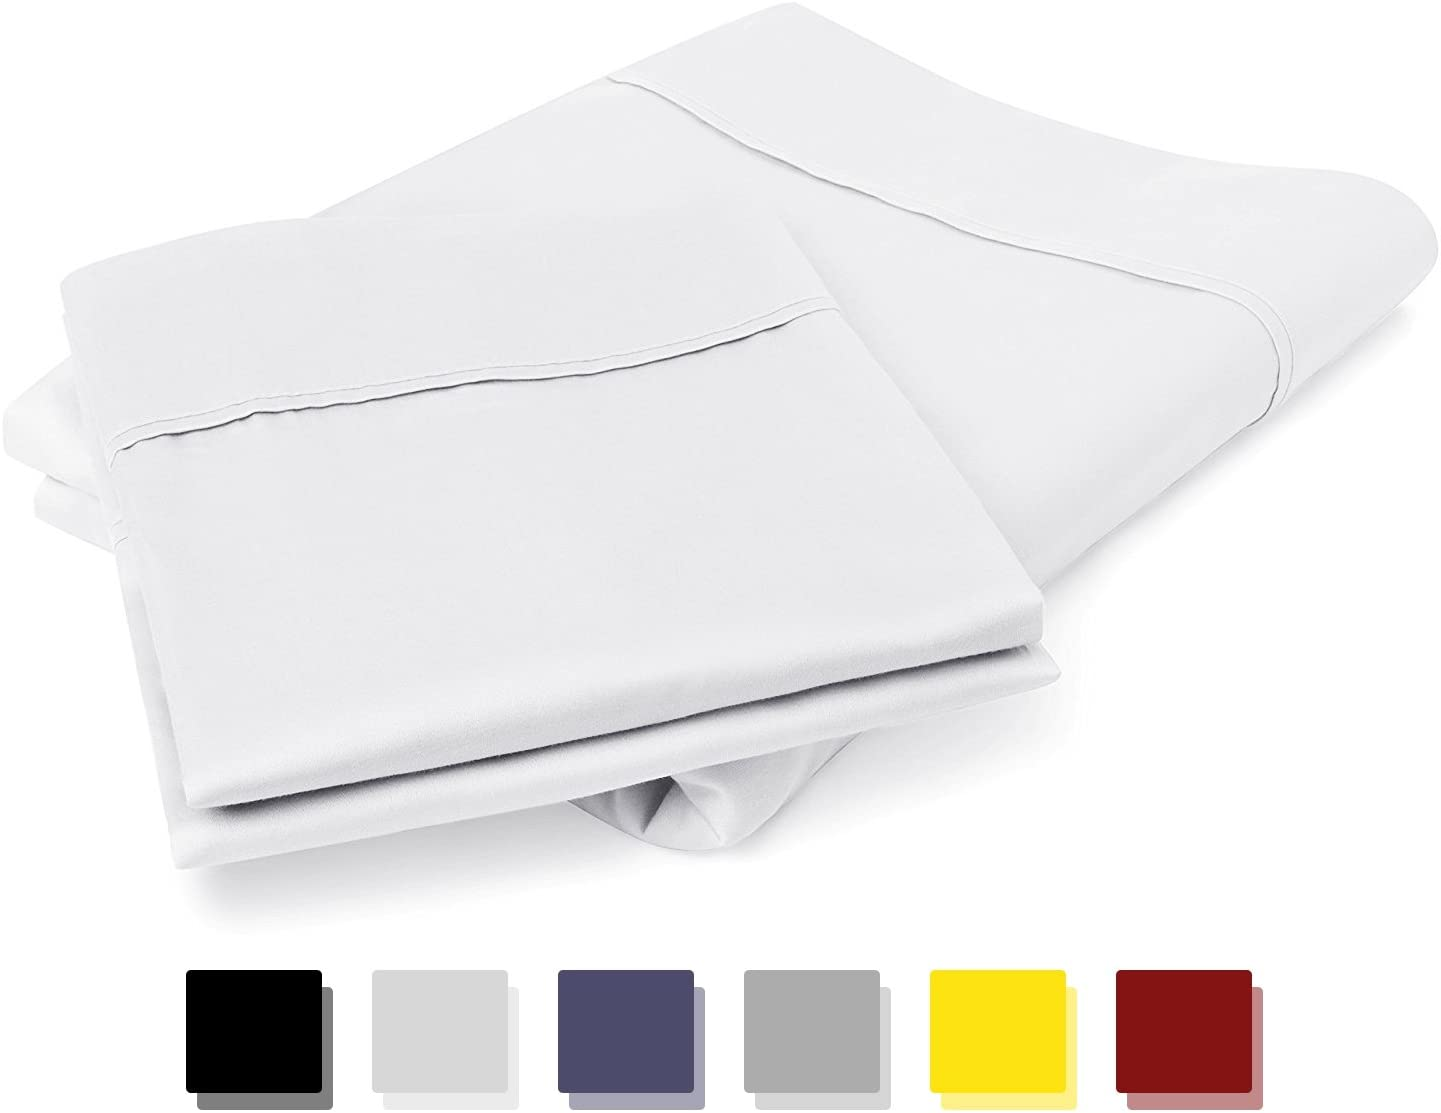 800 Thread Count 100% Egyptian Cotton Pillow Cases, White Standard Pillowcase Set of 2, Long-Staple Combed Pure Natural 100% Cotton Pillows for Sleeping, Soft & Silky Sateen Weave Bed Pillow Cover